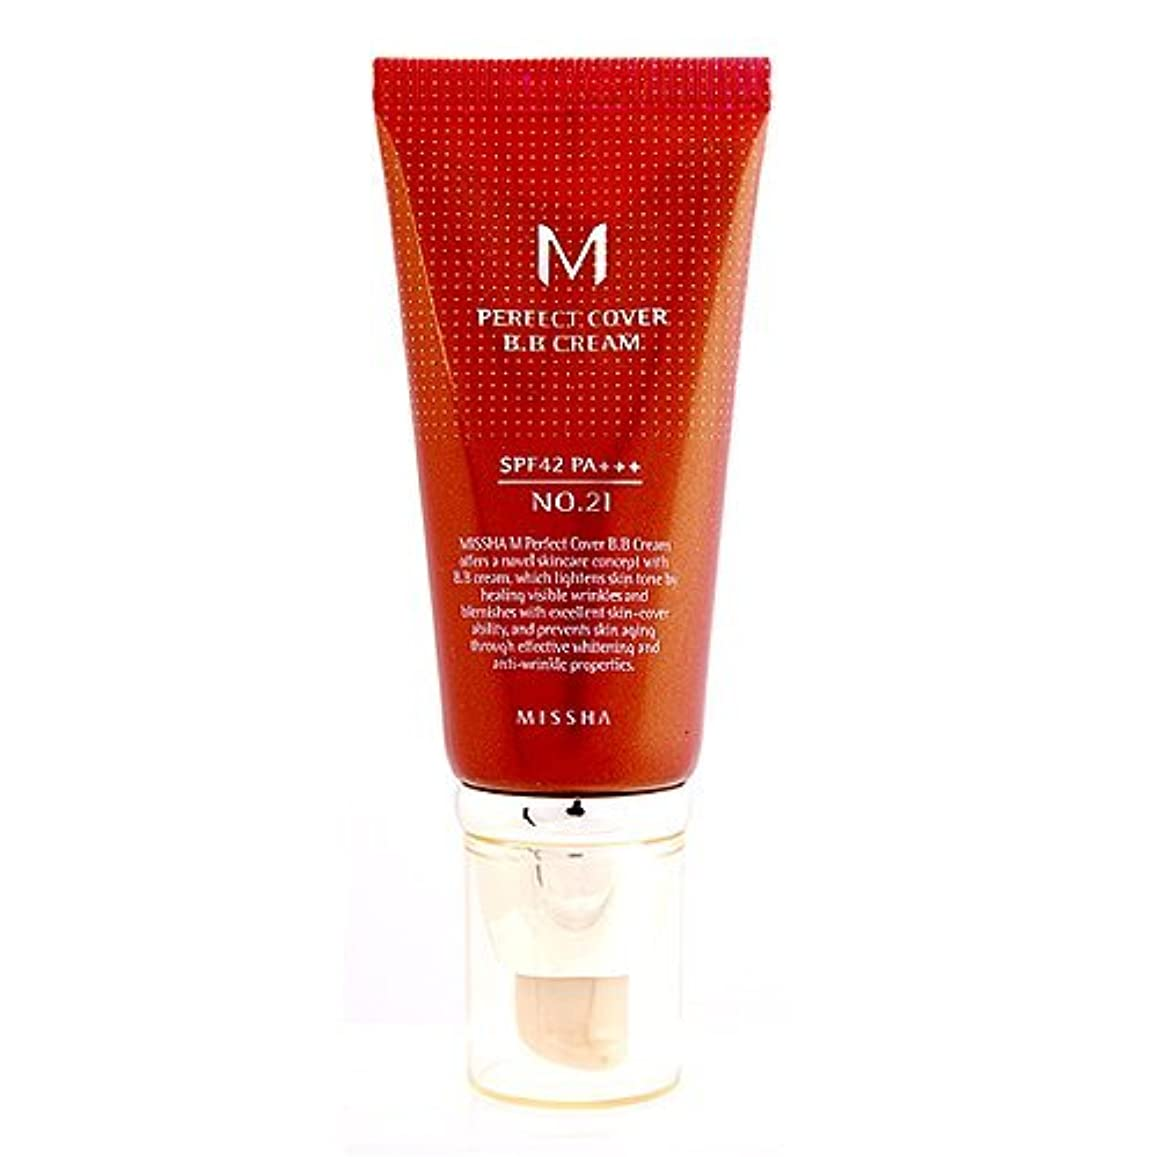 覚醒確認吐き出すMissha M Perfect Cover B.B. Cream SPF 42 PA+++ 21 Light Beige, 1.69oz, 50ml